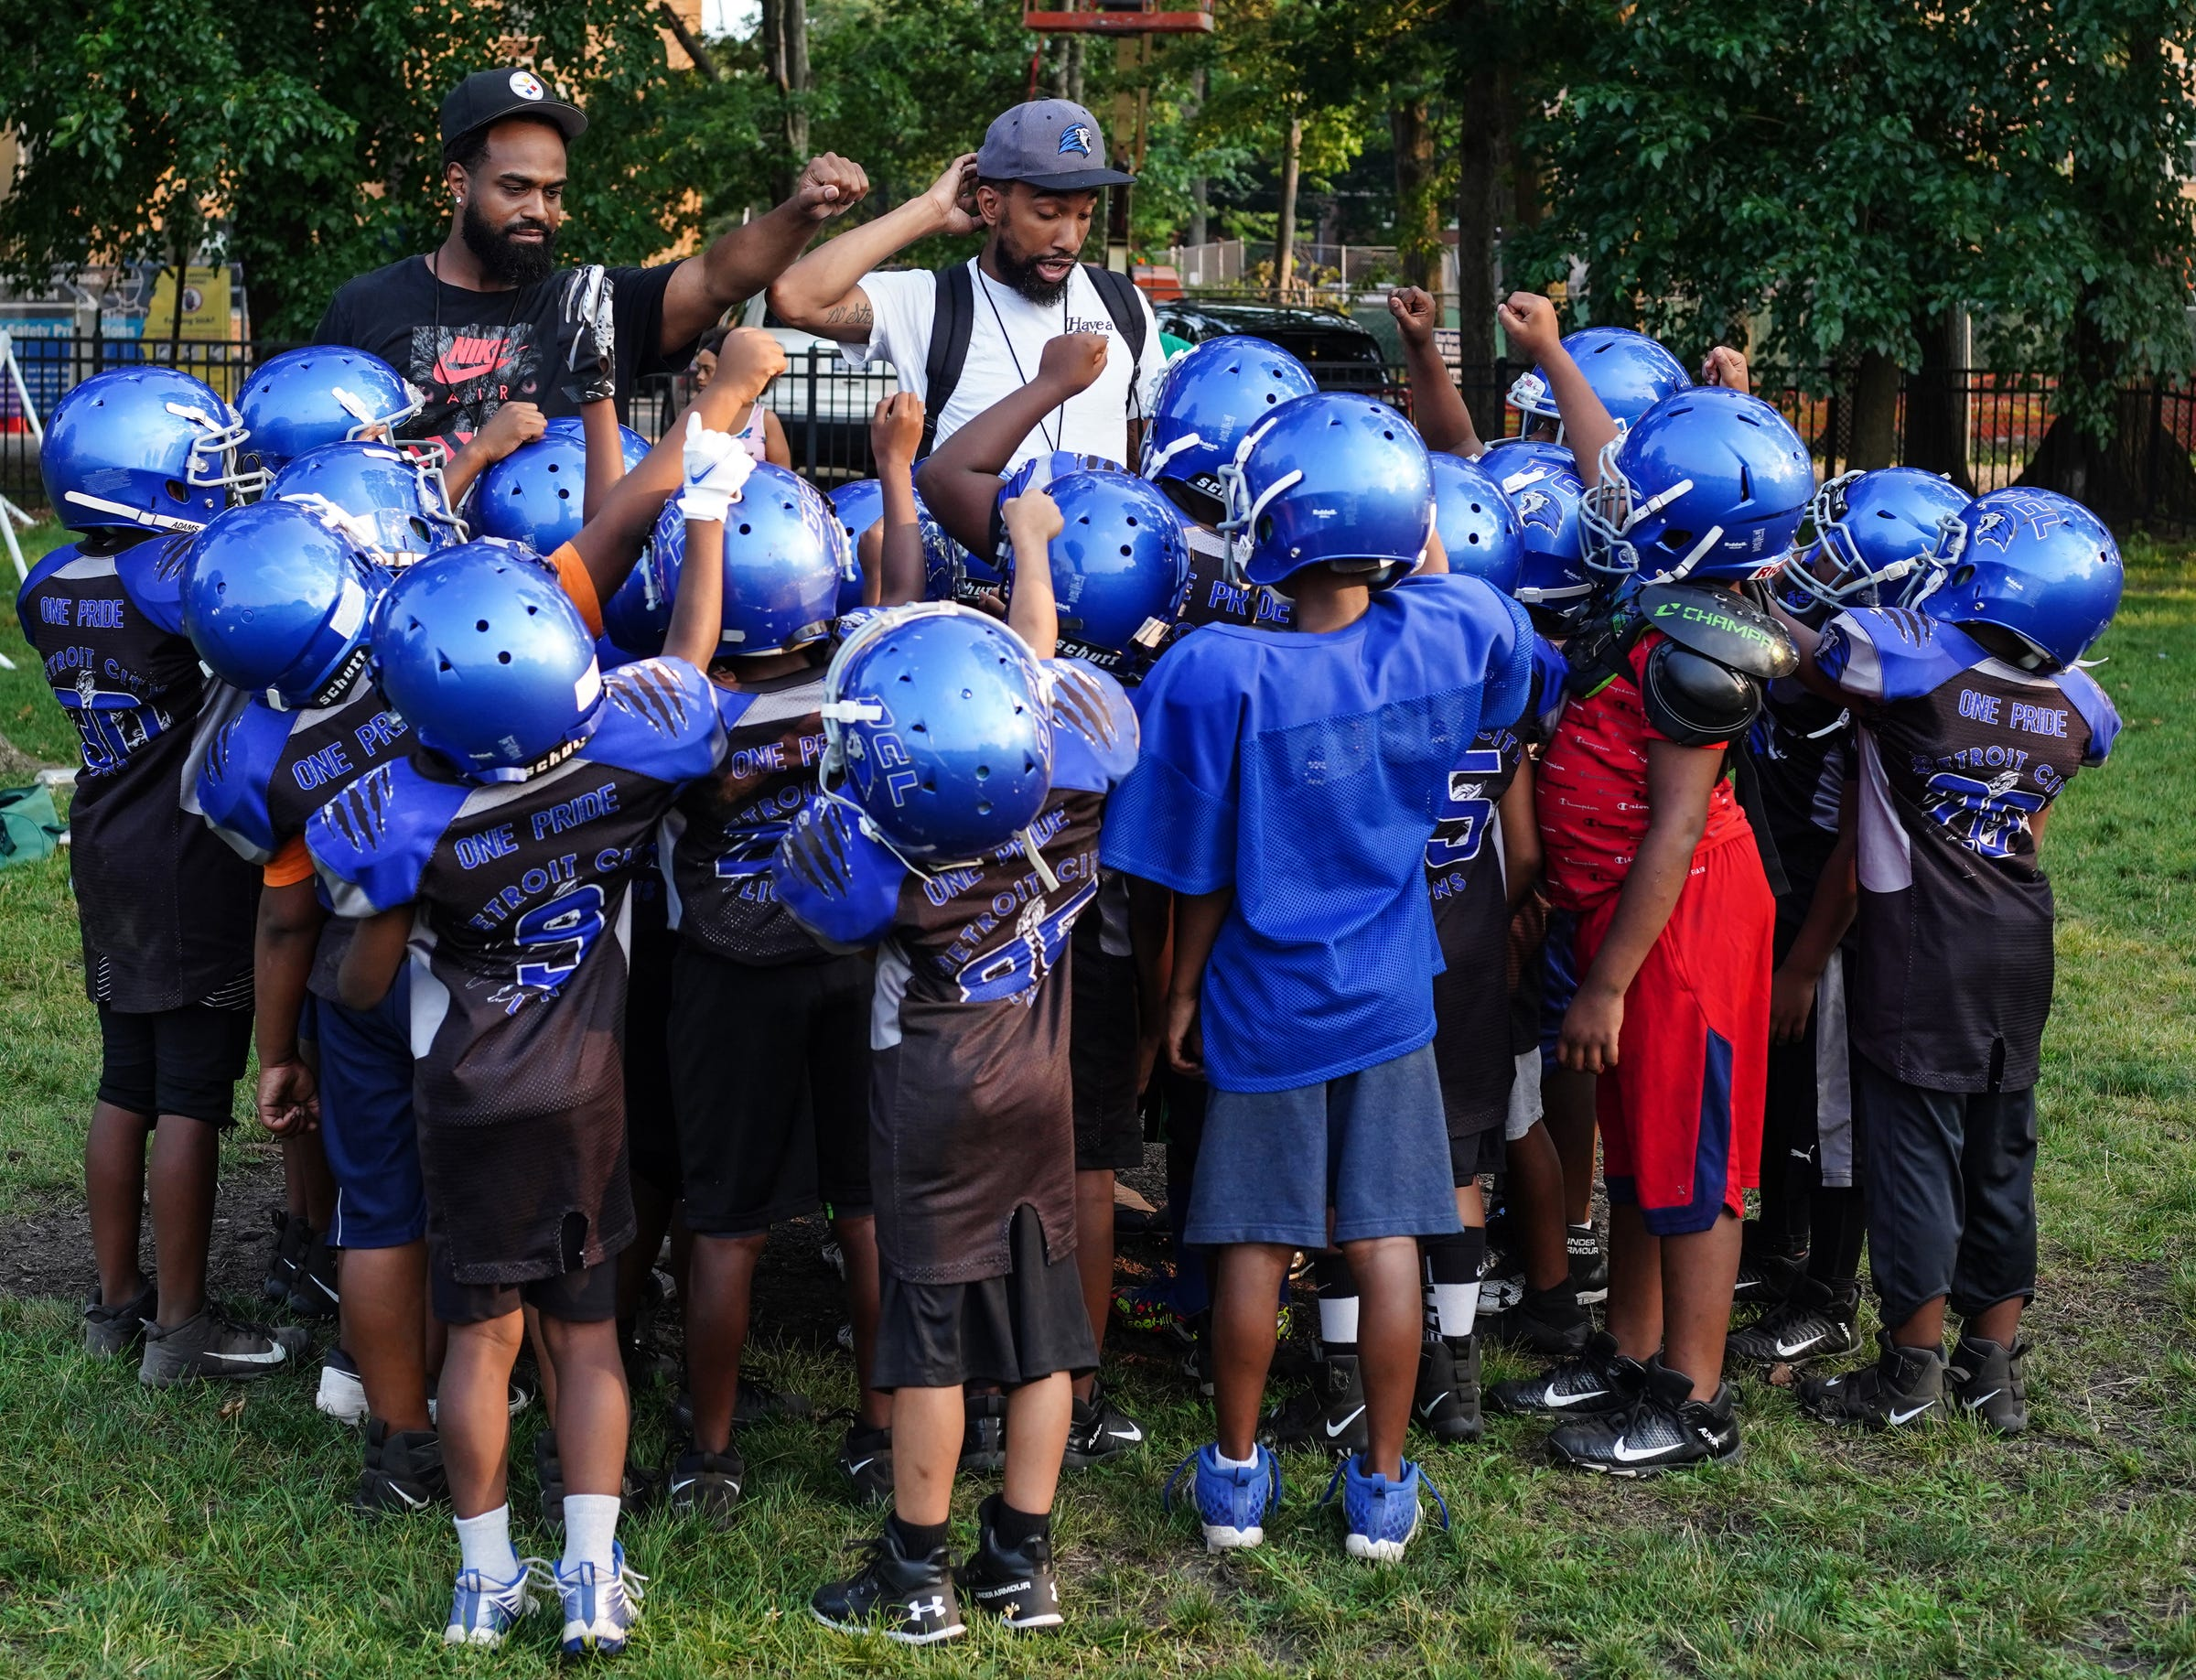 Detroit City Lions football team huddle at practice at Marygrove College in Detroit on July 29, 2021. Detroit City Lions, a youth program founded by Devon Buskin is more than a youth football program. The program offers robotics classes, volleyball, musical arts along with football and cheer.